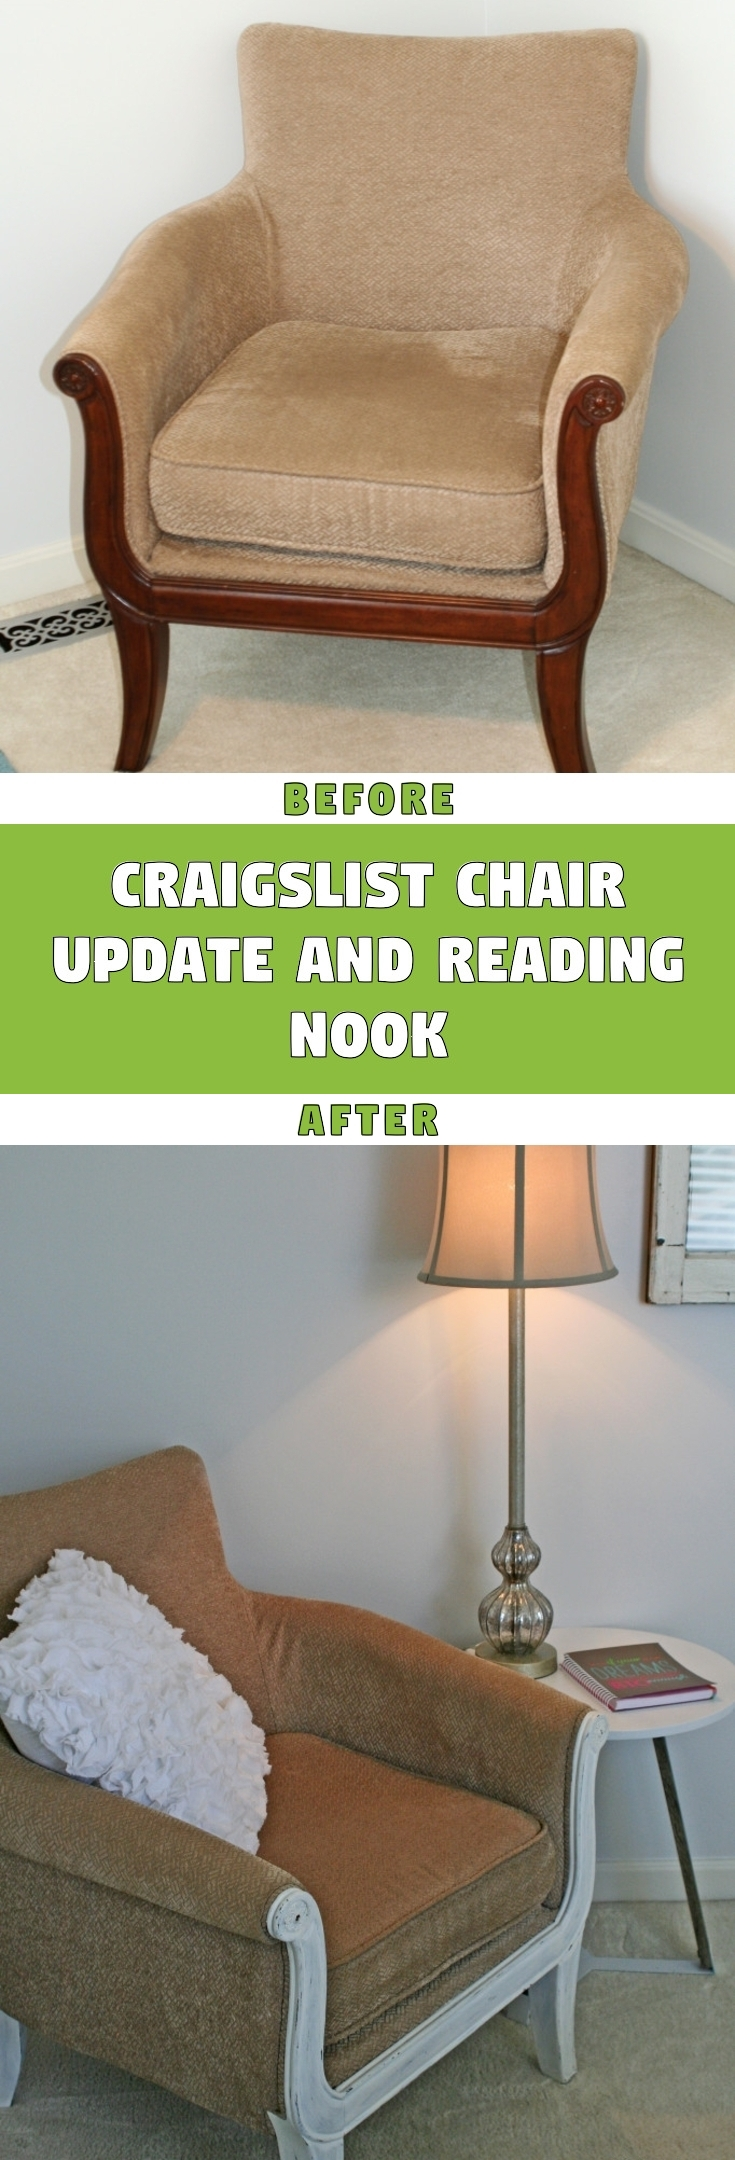 Craigslist Chair Update And Reading Nook Furniture Redos See more of craigslist.com on facebook. craigslist chair update and reading nook furniture redos